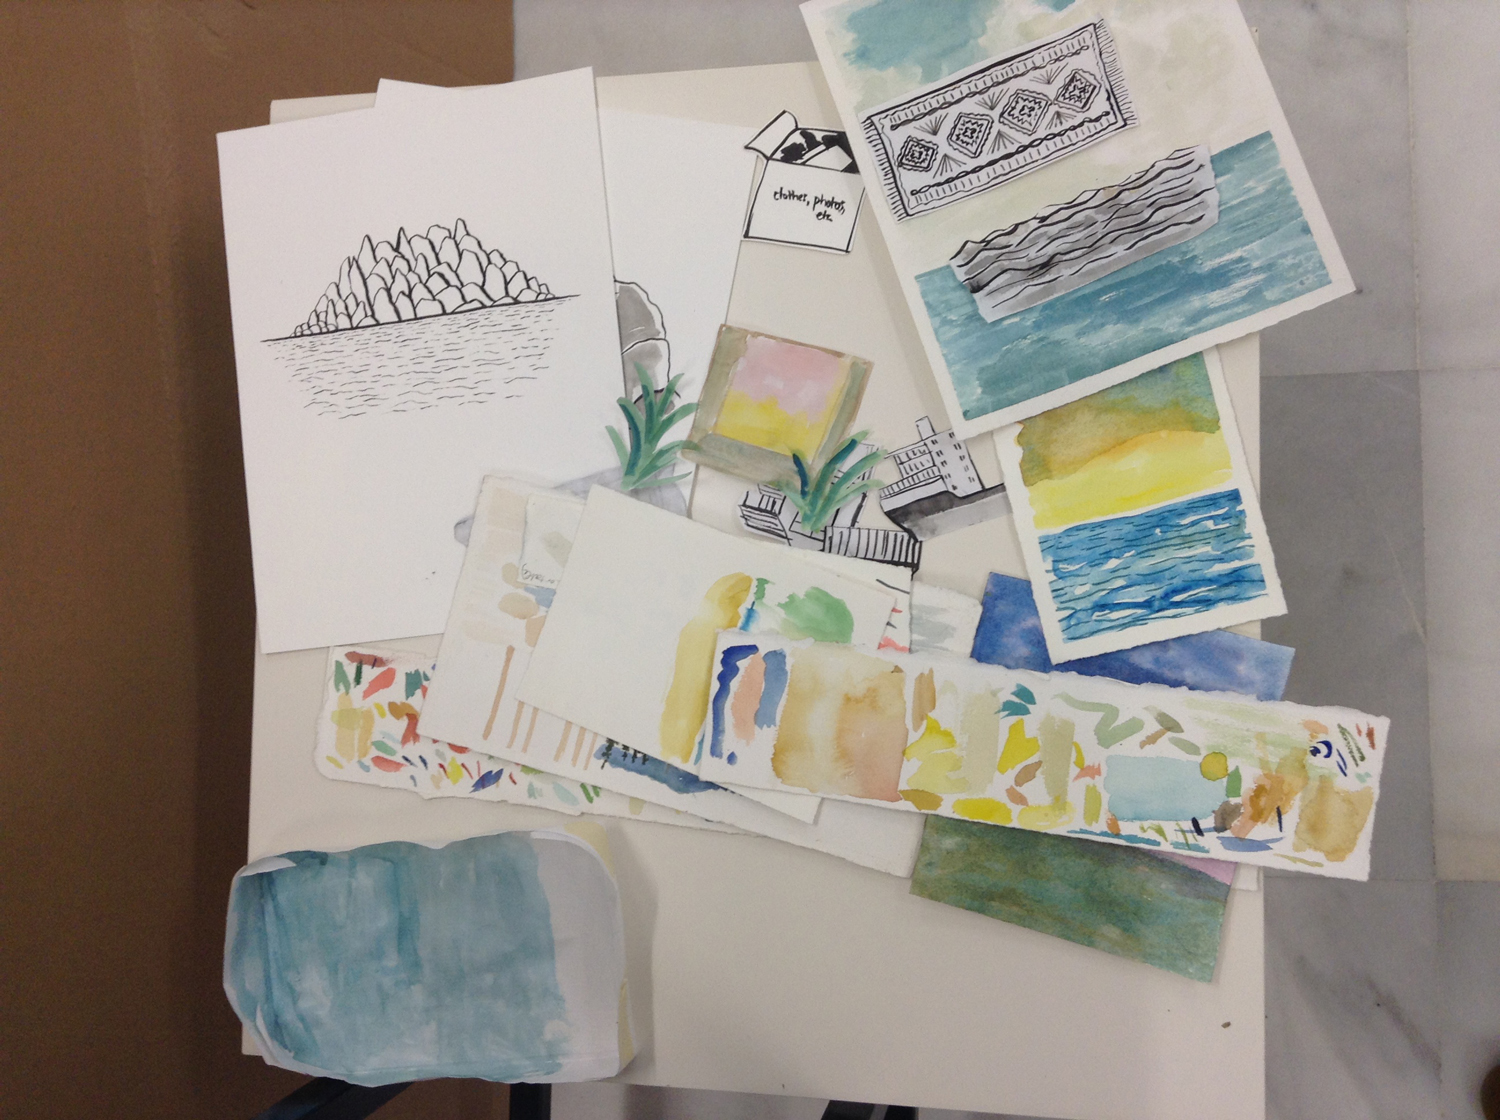 Paint test sheets, cut shapes, ink drawings and watercolor paintings.